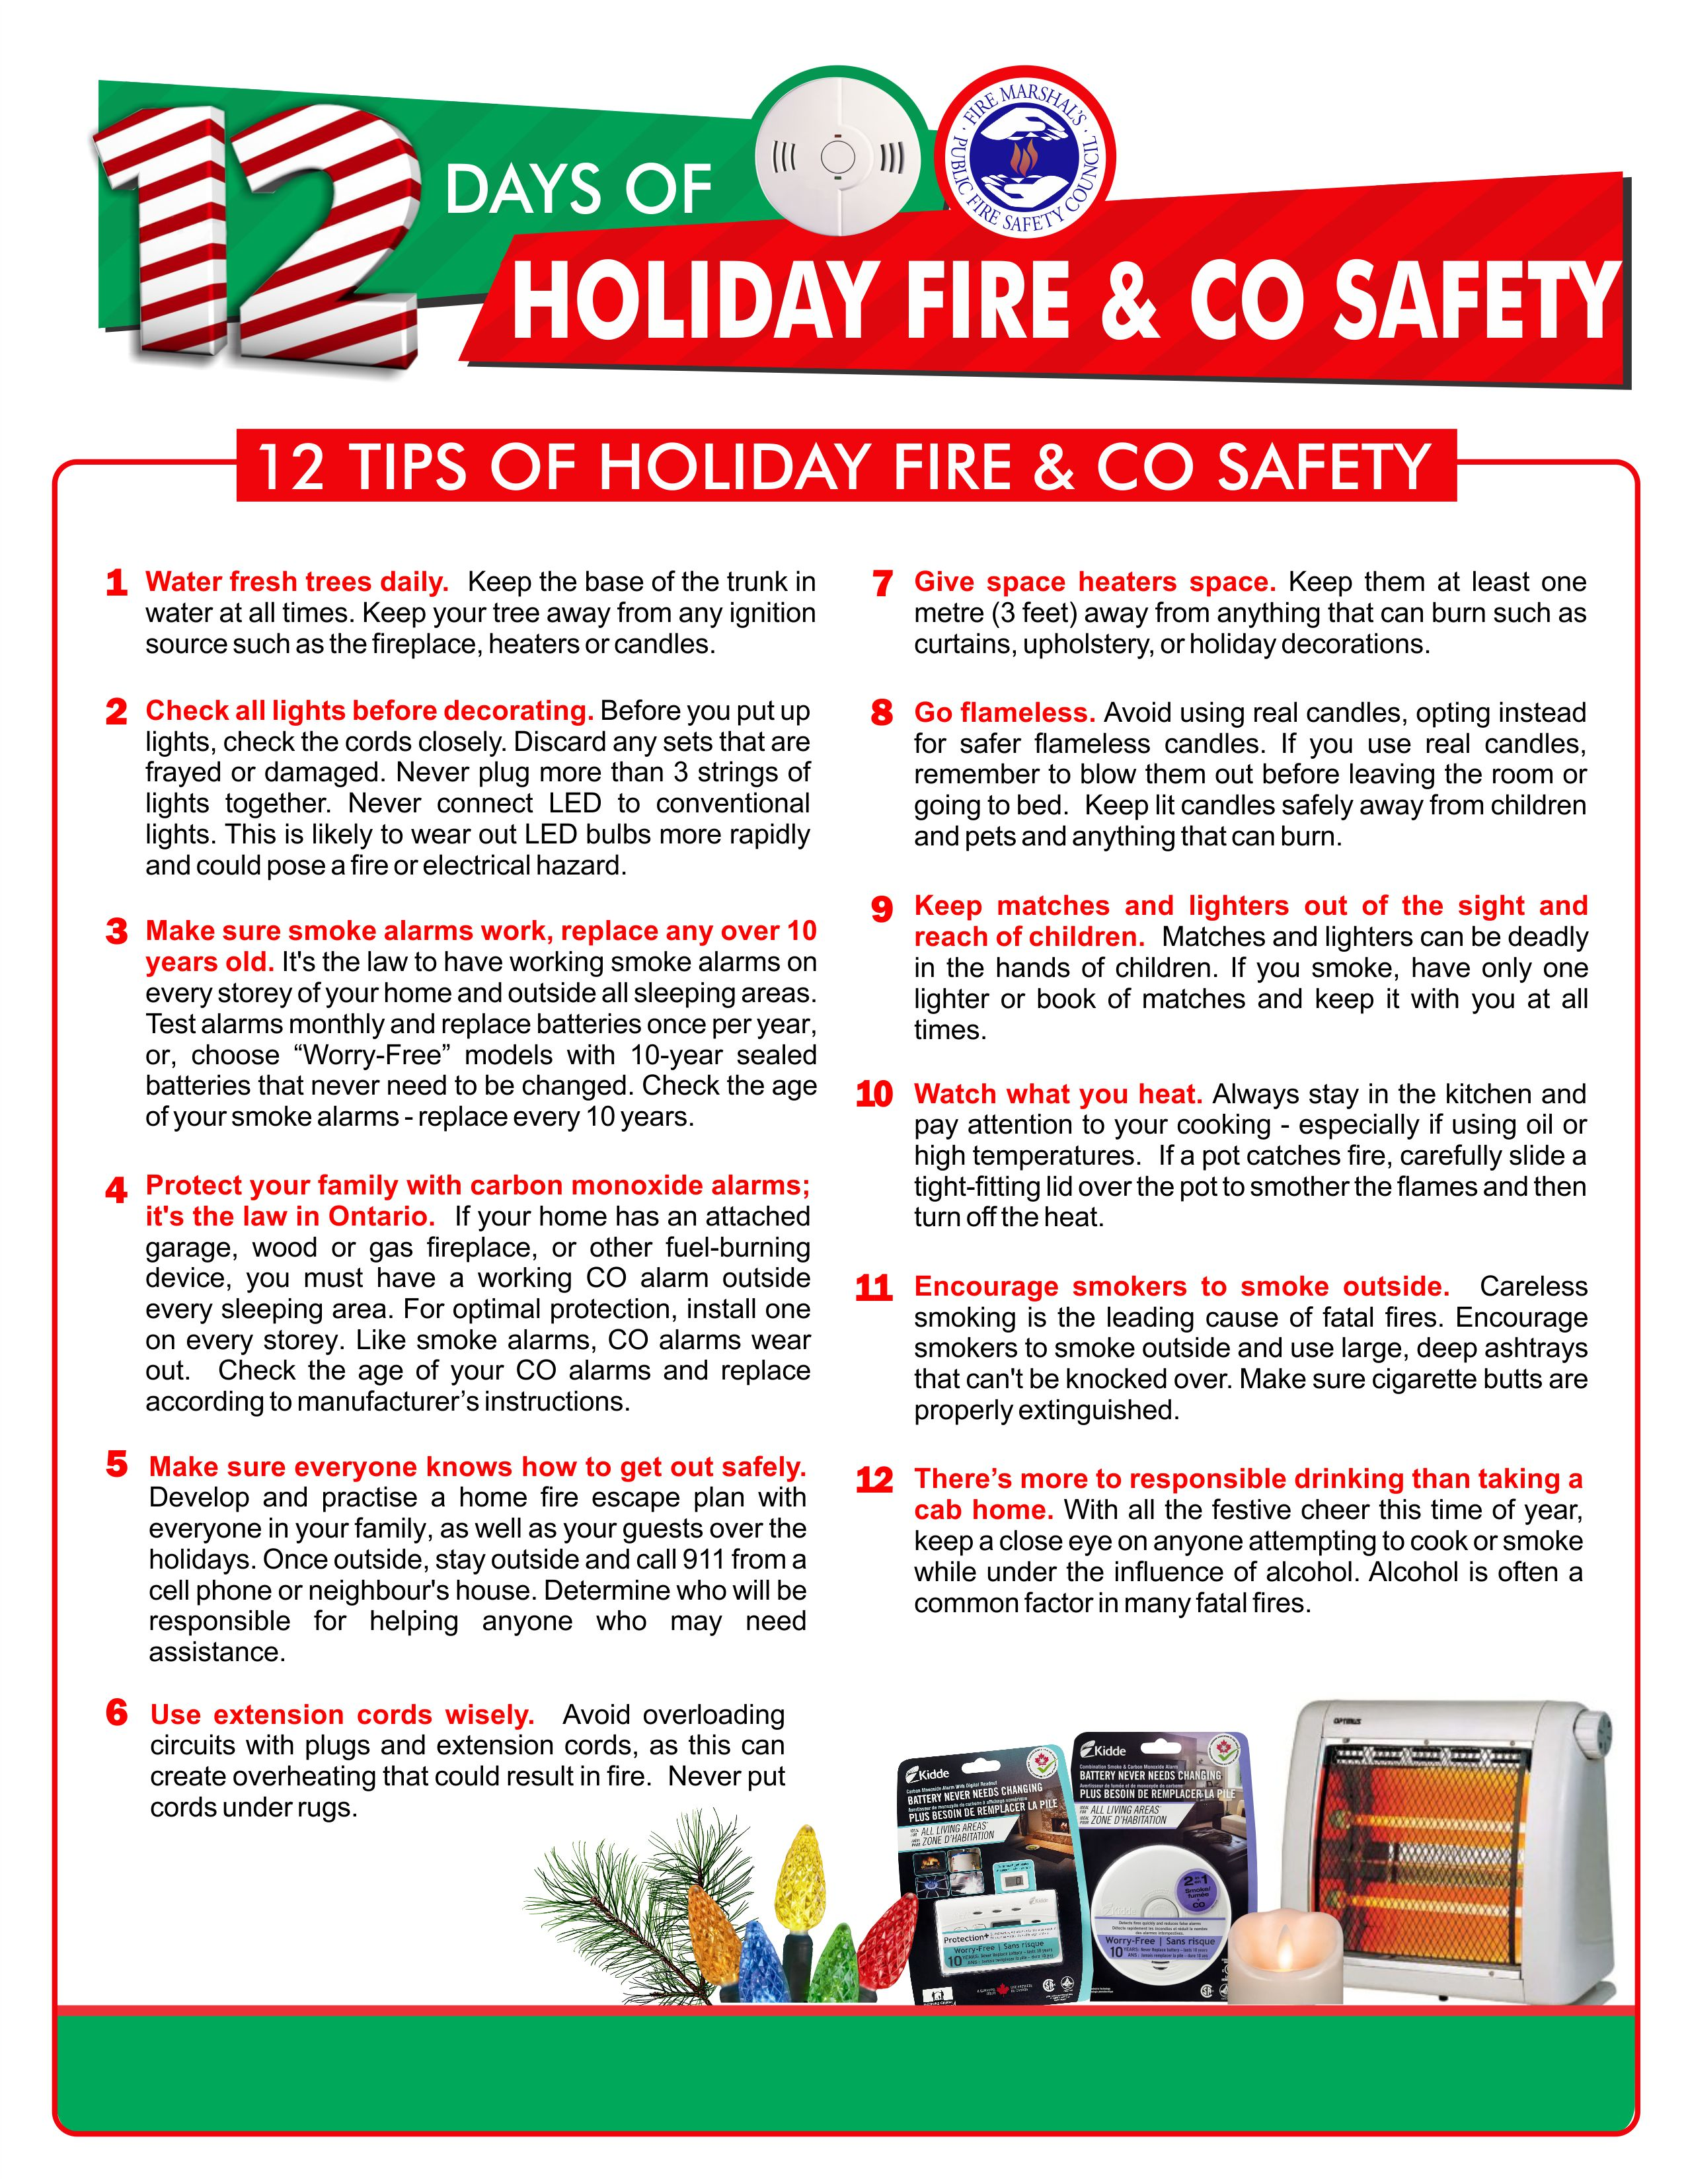 12 Days of Holiday Fire Safety - 12 Safety Tips.jpg